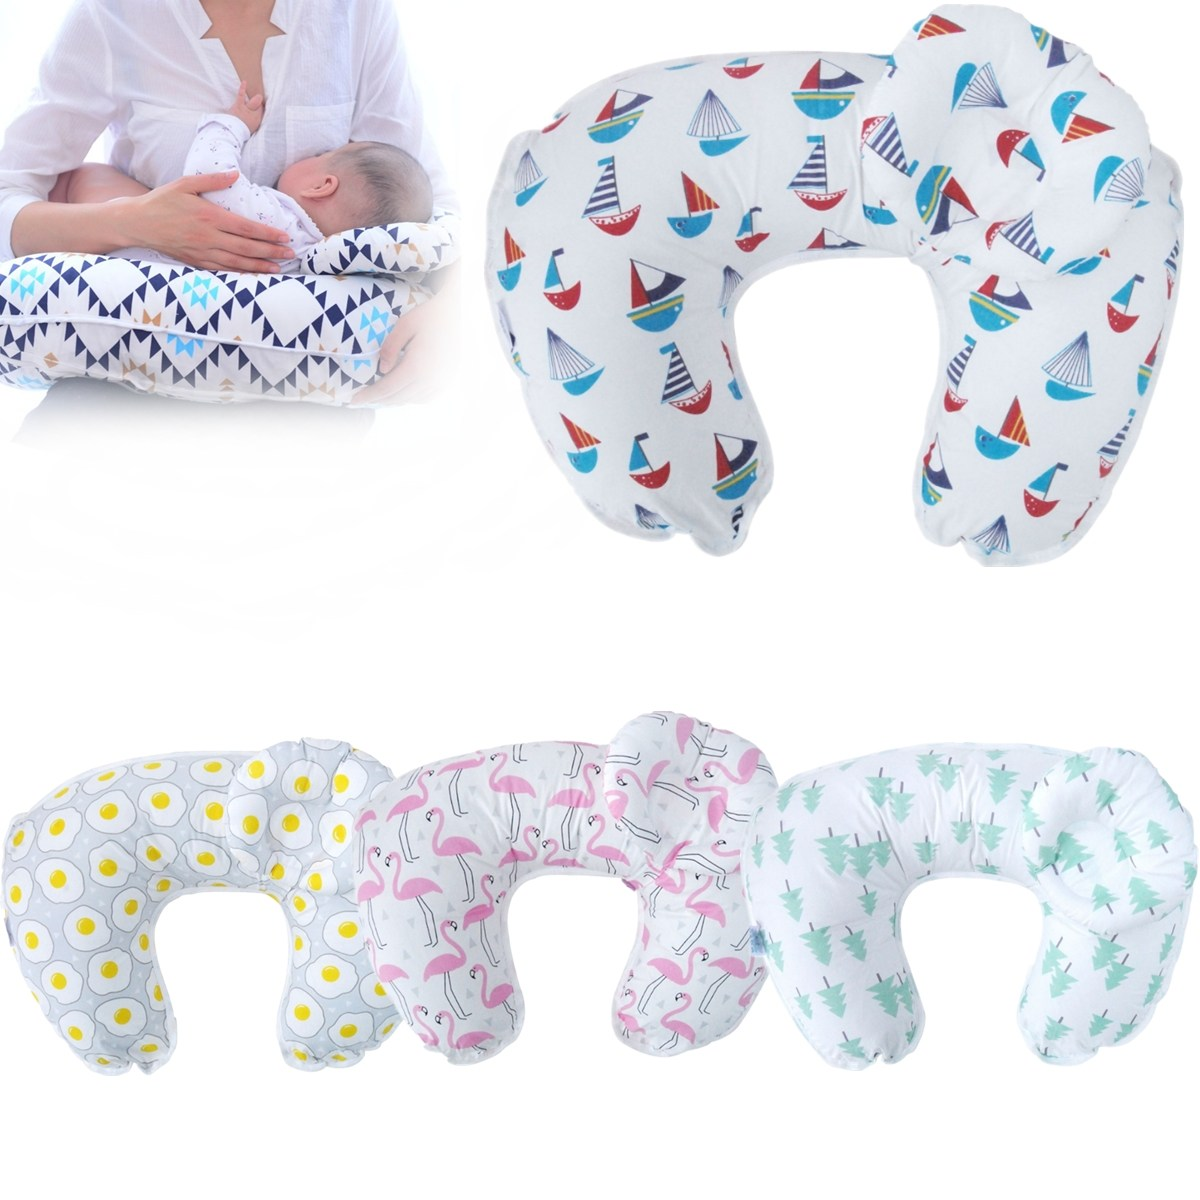 Kids U-Shaped Baby Maternity Breastfeeding Nursing Pillow Breast Feed Cushion Support Detachable Pillow Bedding Supplies